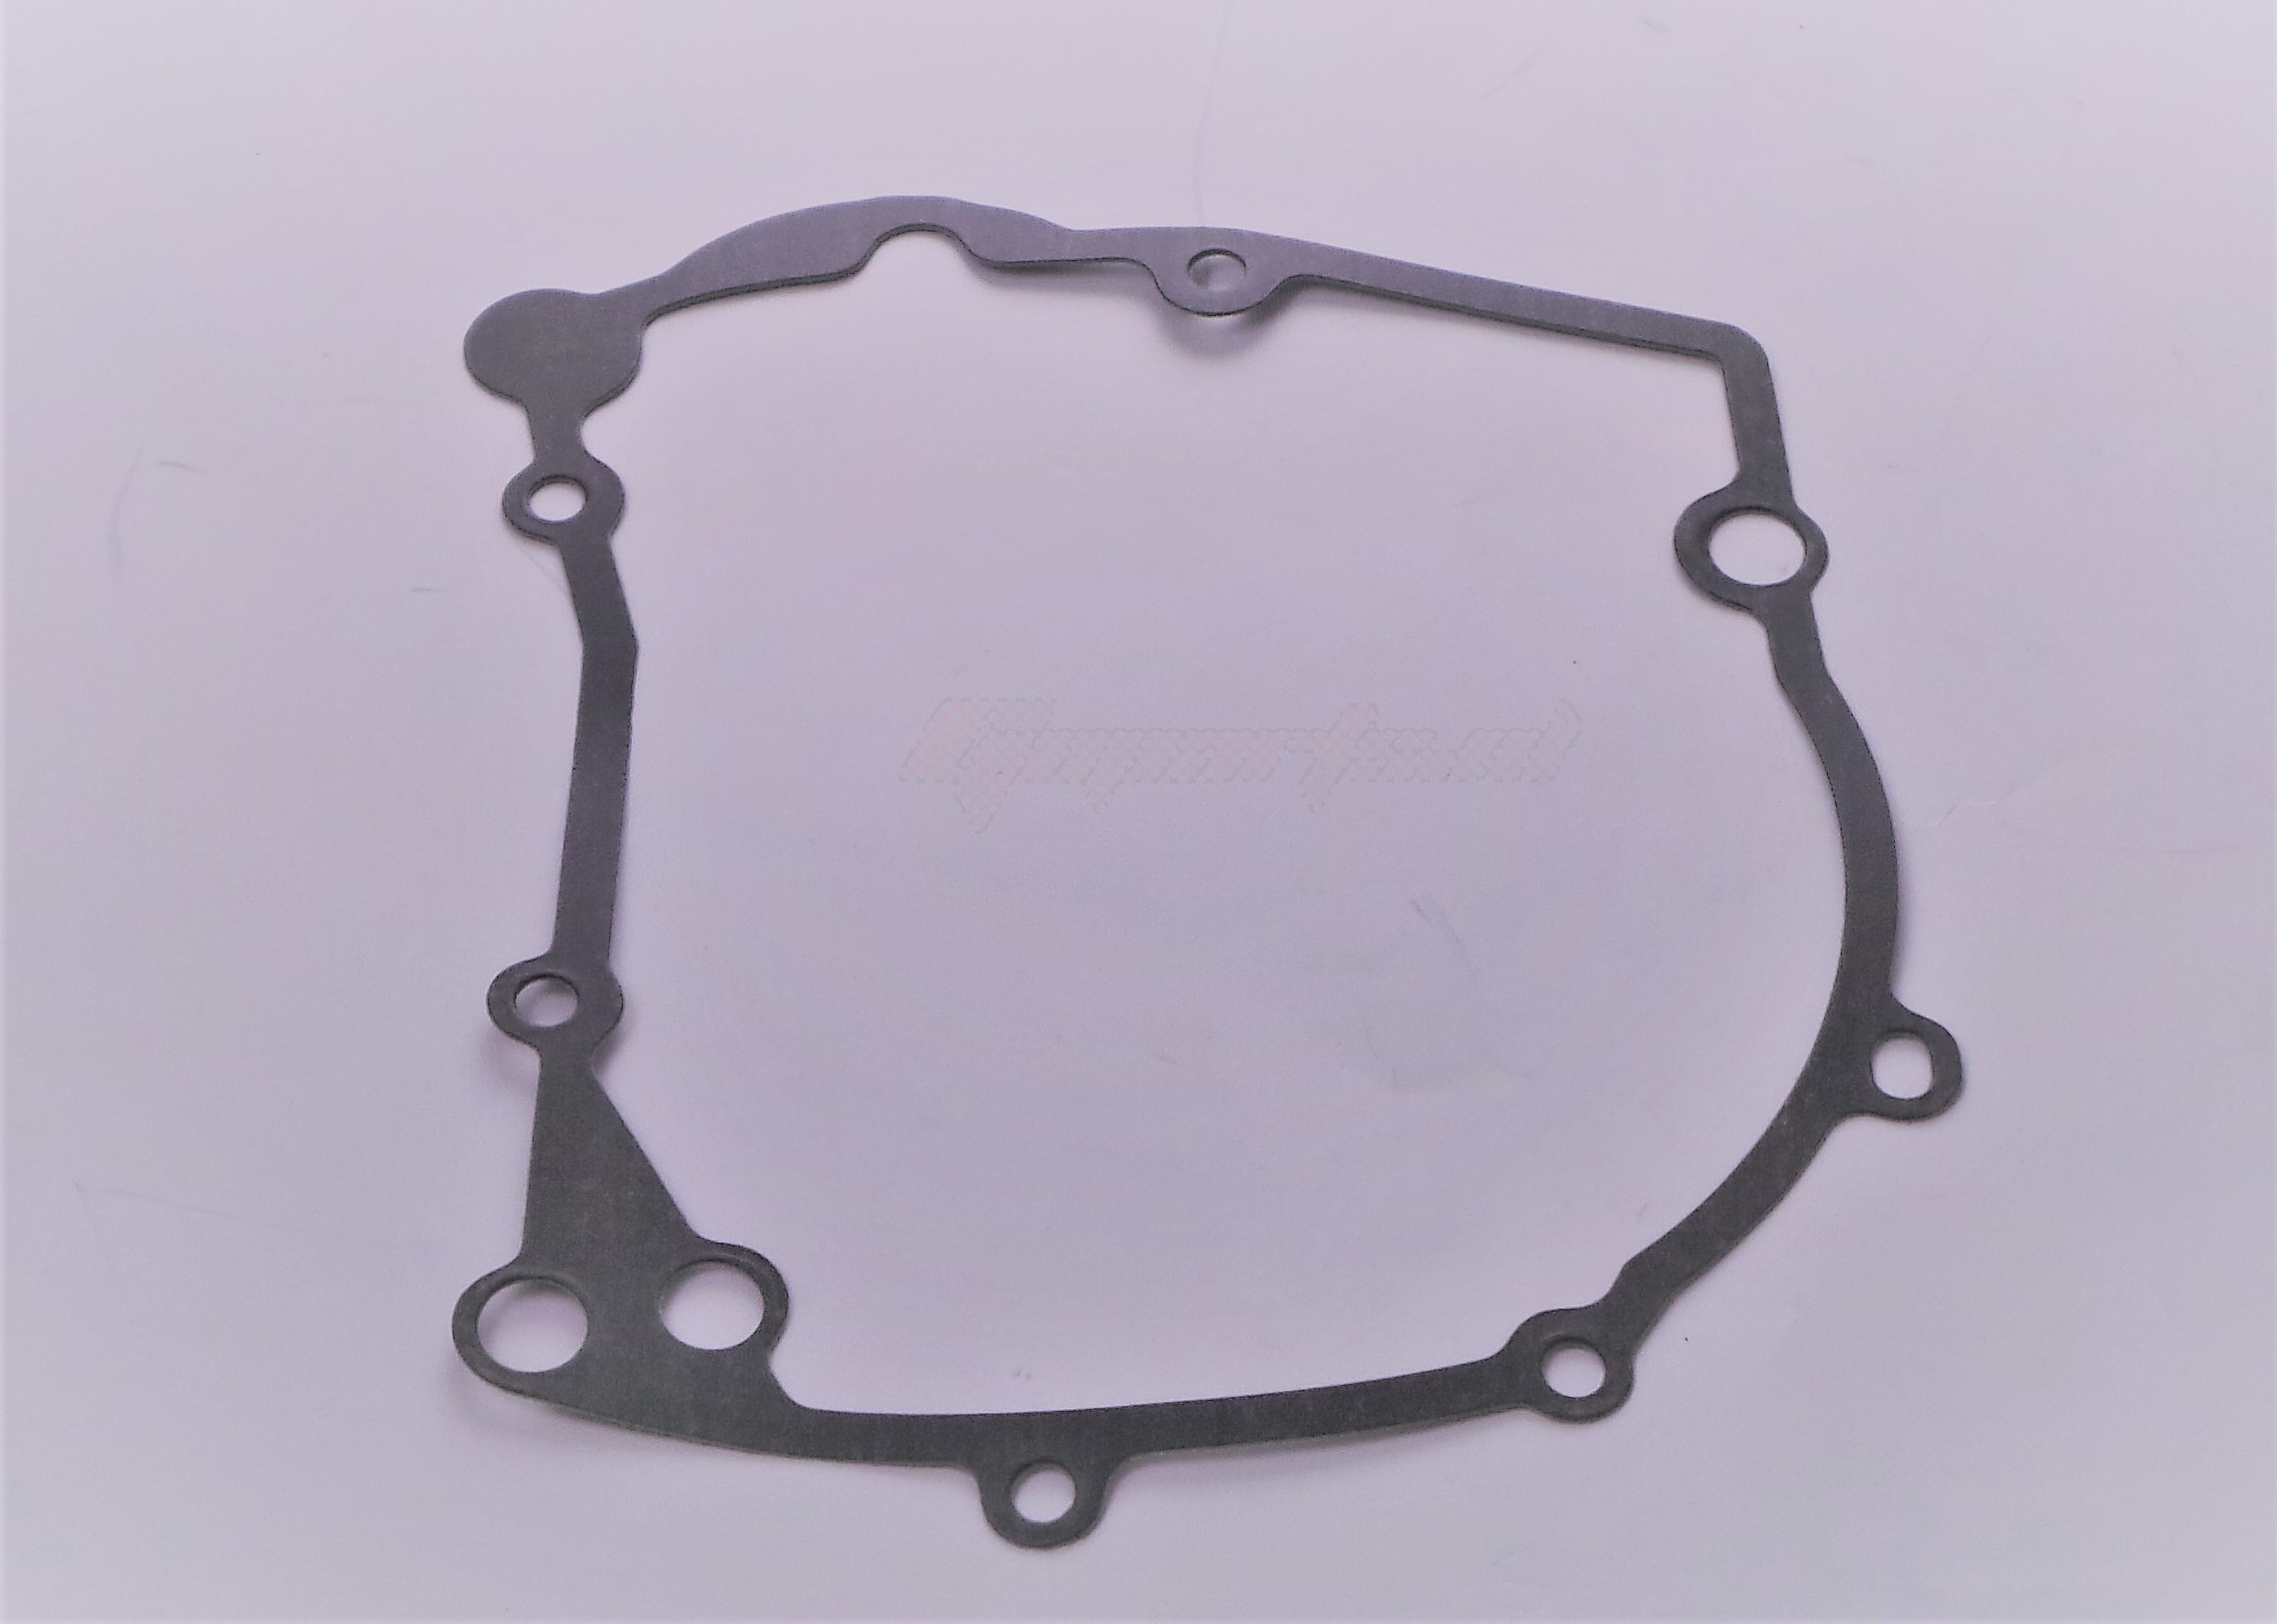 Gasket Set Full for 2000 Cagiva Mito 125